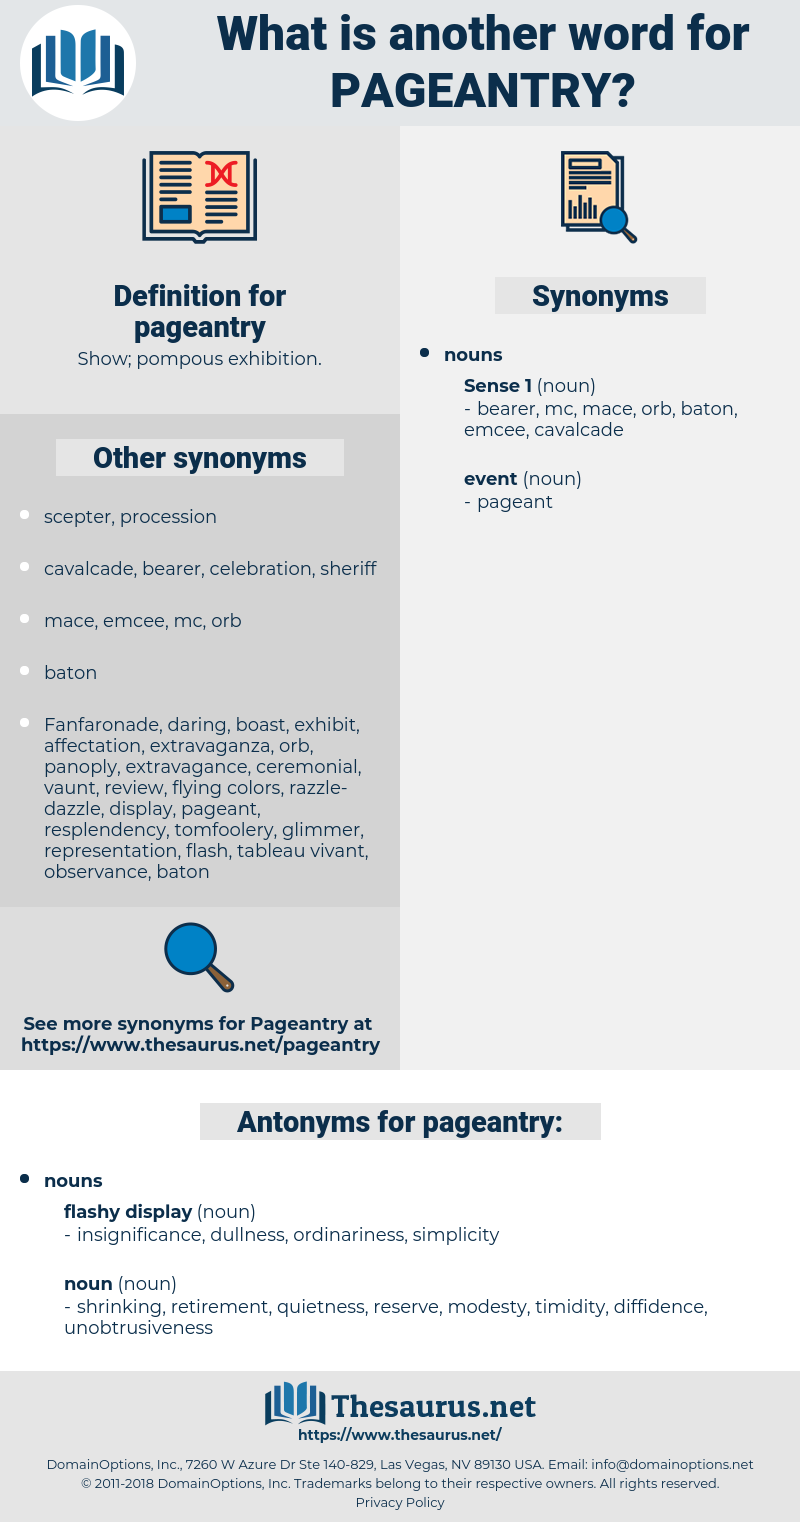 pageantry, synonym pageantry, another word for pageantry, words like pageantry, thesaurus pageantry